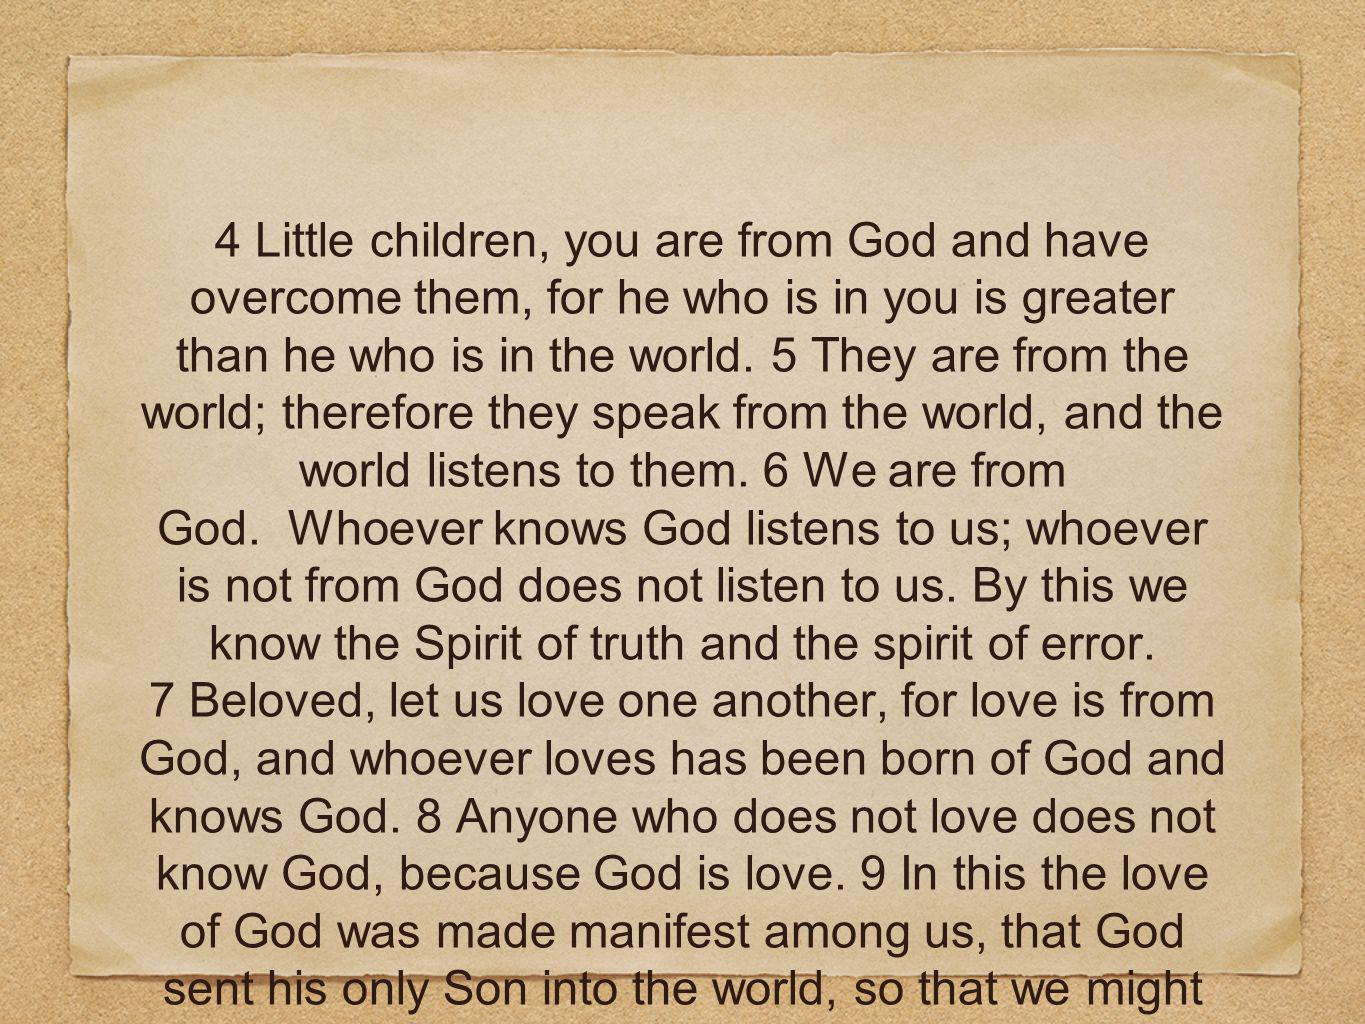 4 Little children, you are from God and have overcome them, for he who is in you is greater than he who is in the world. 5 They are from the world; therefore they speak from the world, and the world listens to them. 6 We are from God. Whoever knows God listens to us; whoever is not from God does not listen to us. By this we know the Spirit of truth and the spirit of error.